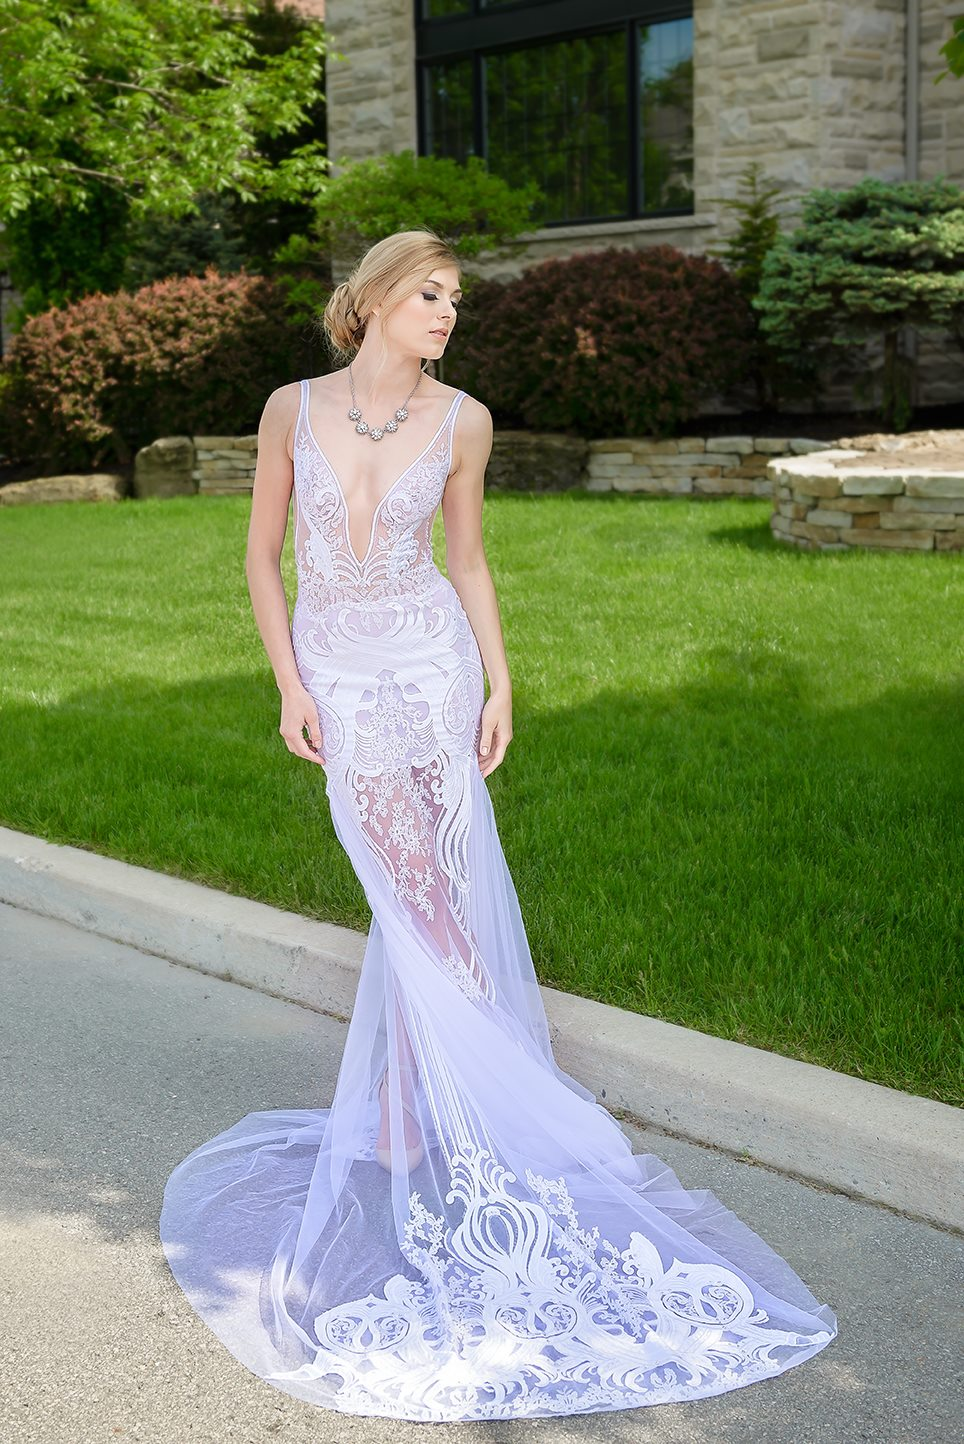 wedding dress custom made montreal haute couture